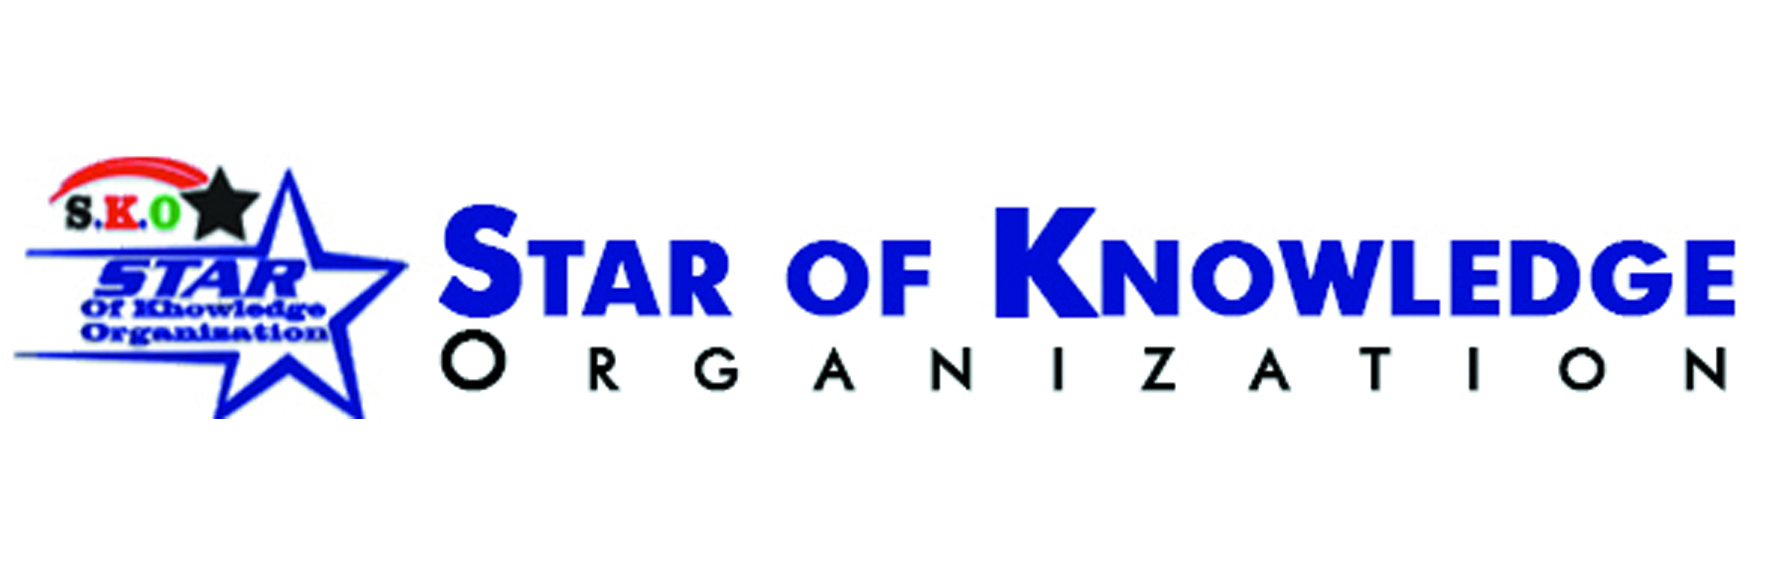 Star of Knowledge Organization